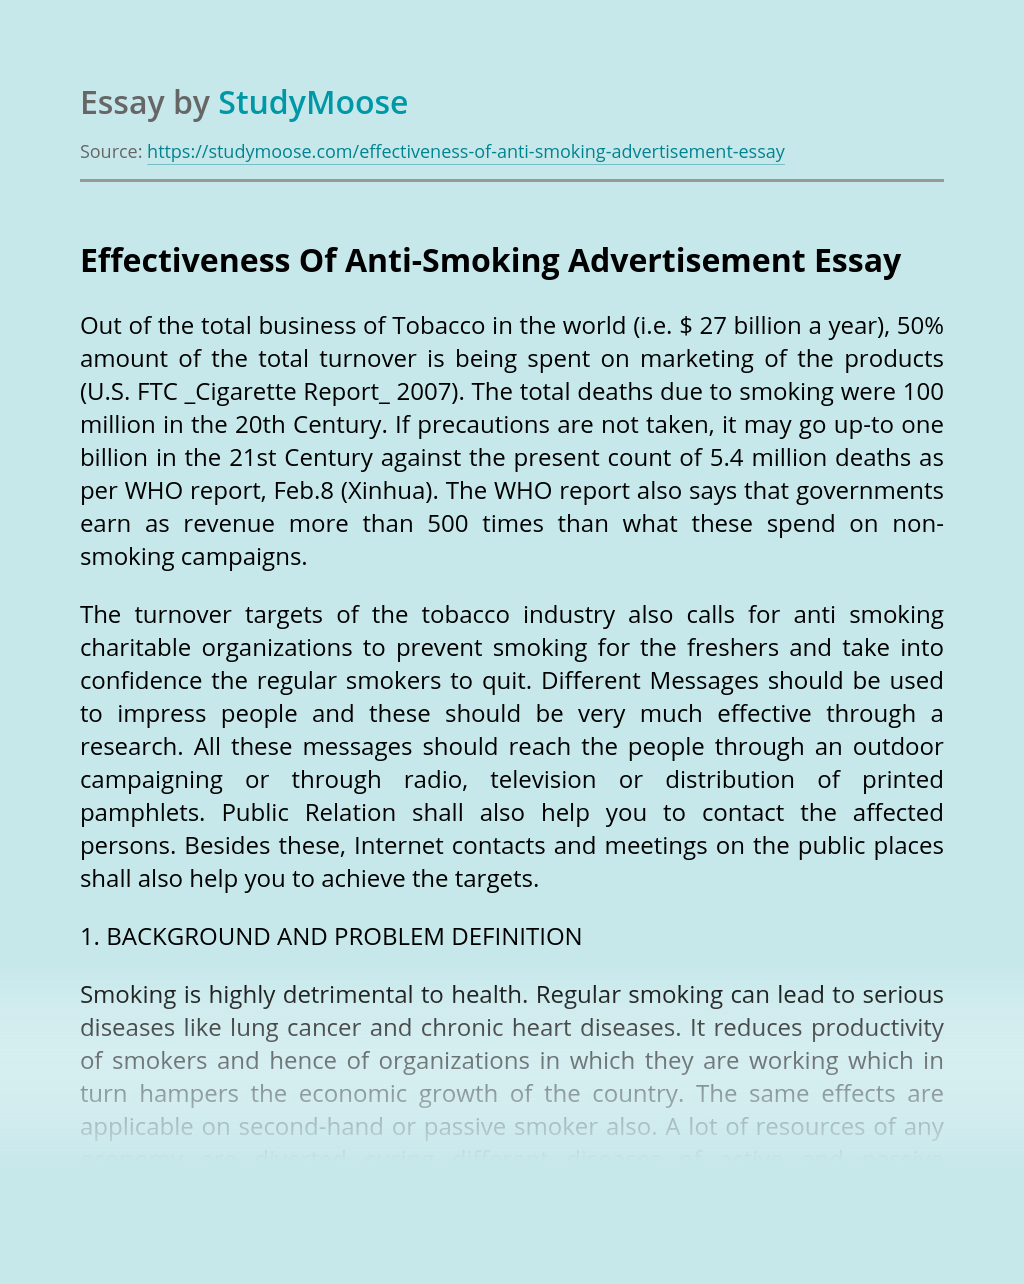 Effectiveness Of Anti-Smoking Advertisement